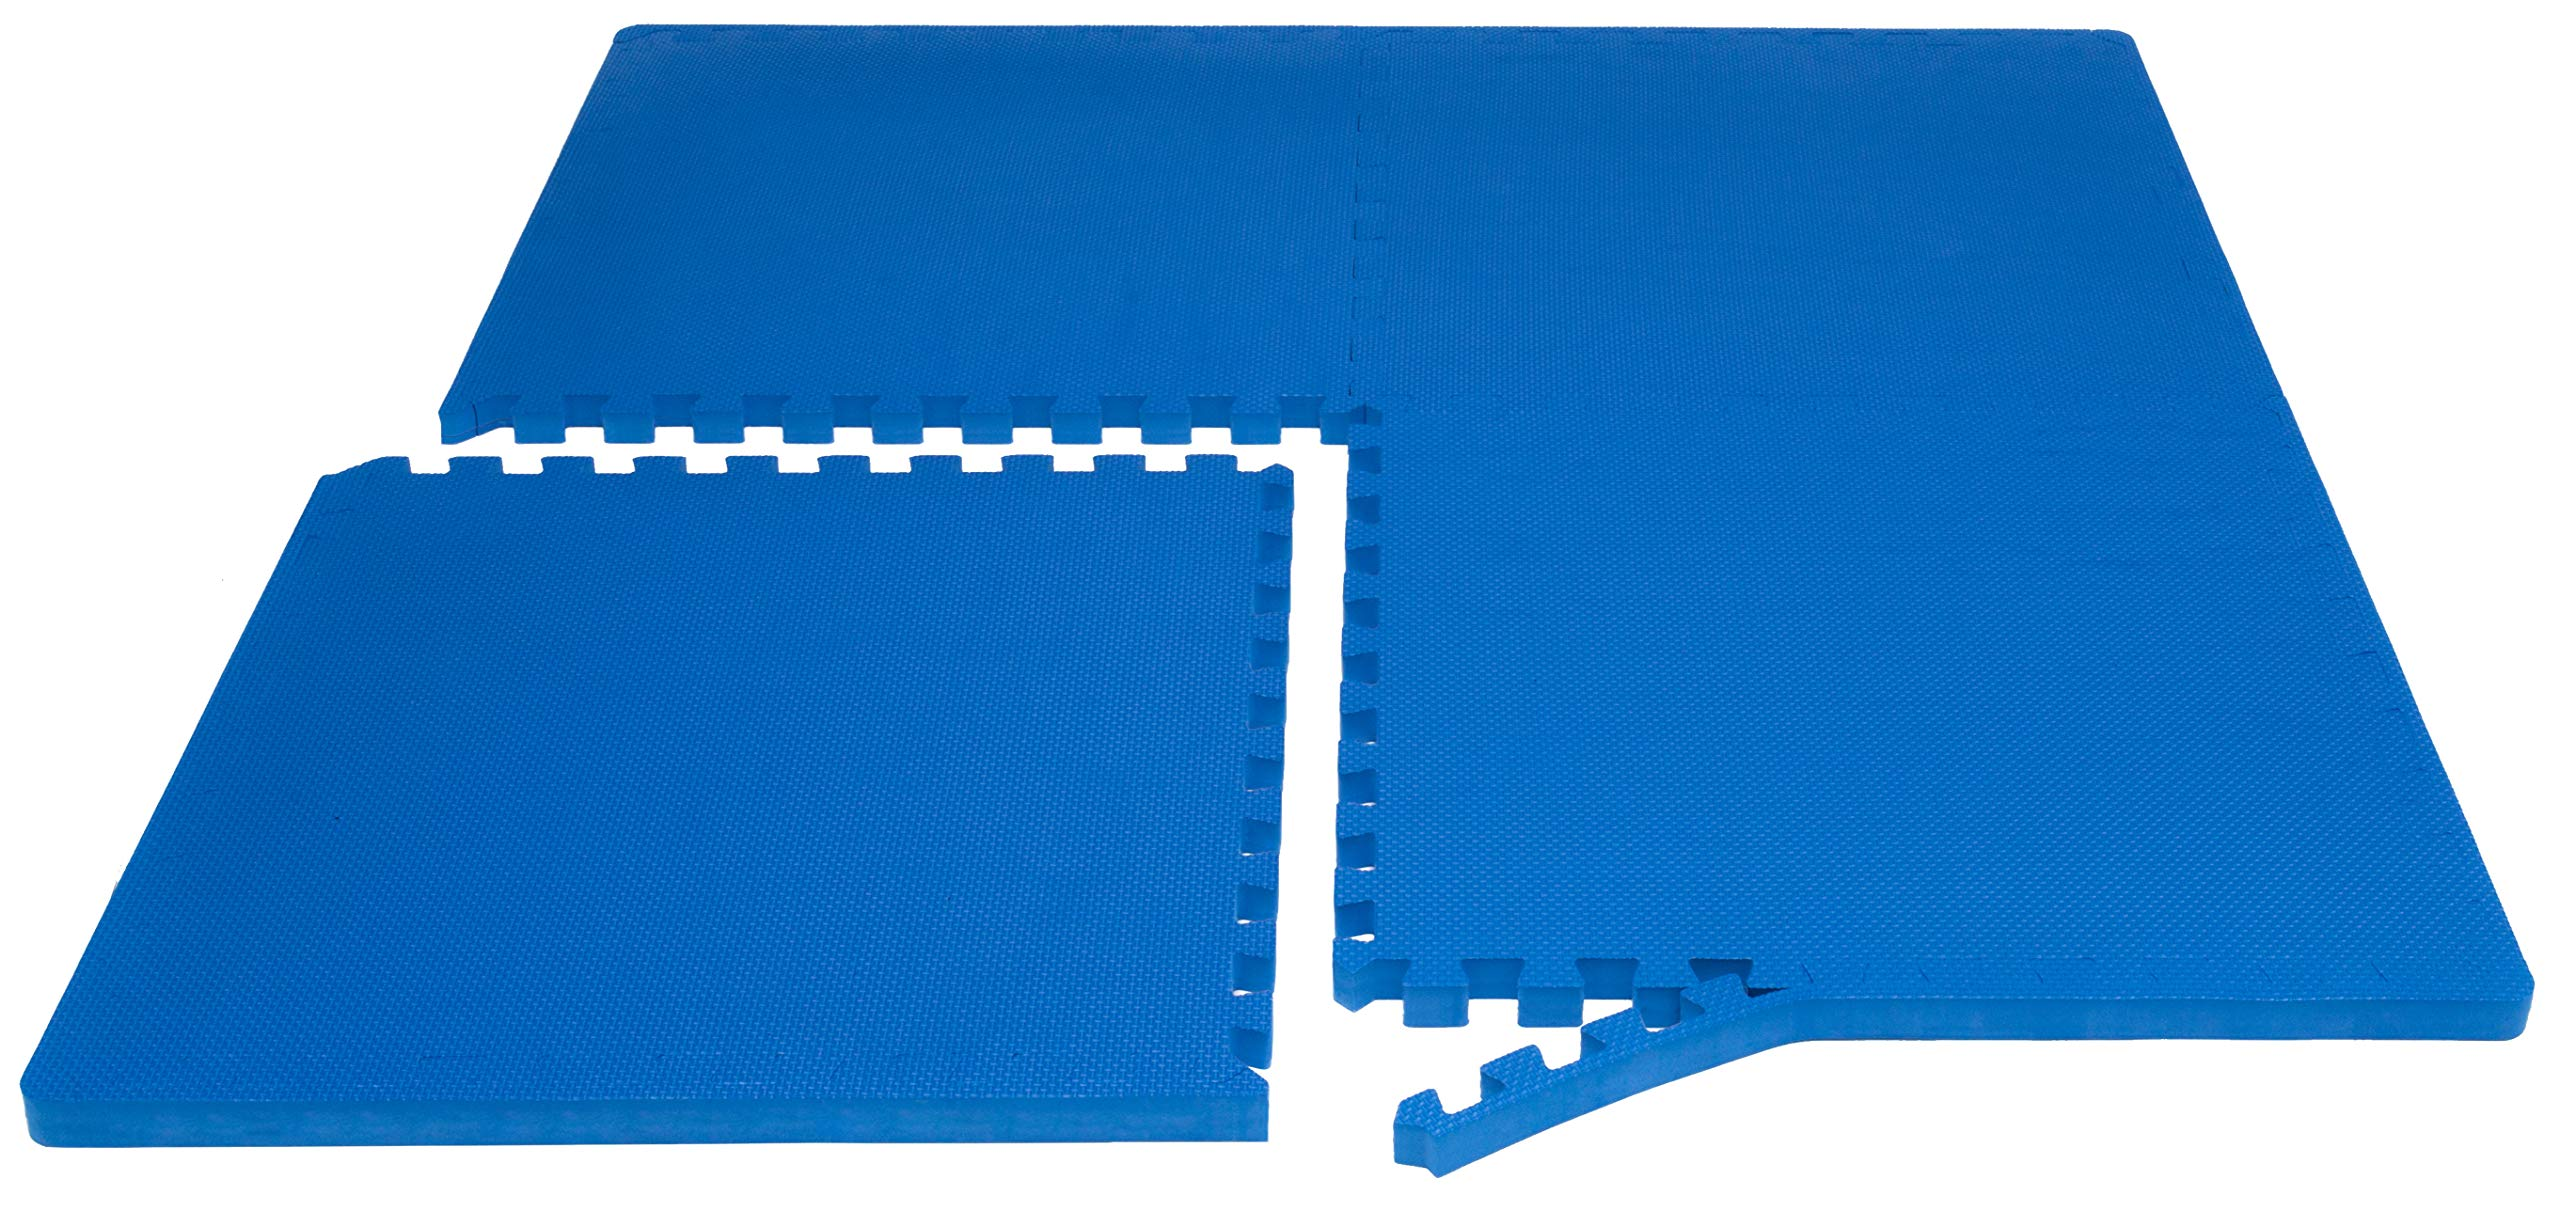 """Prosource Fit Extra Thick Puzzle Exercise Mat 1"""", EVA Foam Interlocking Tiles for Protective, Cushioned Workout Flooring for Home and Gym Equipment, Blue by ProsourceFit (Image #3)"""